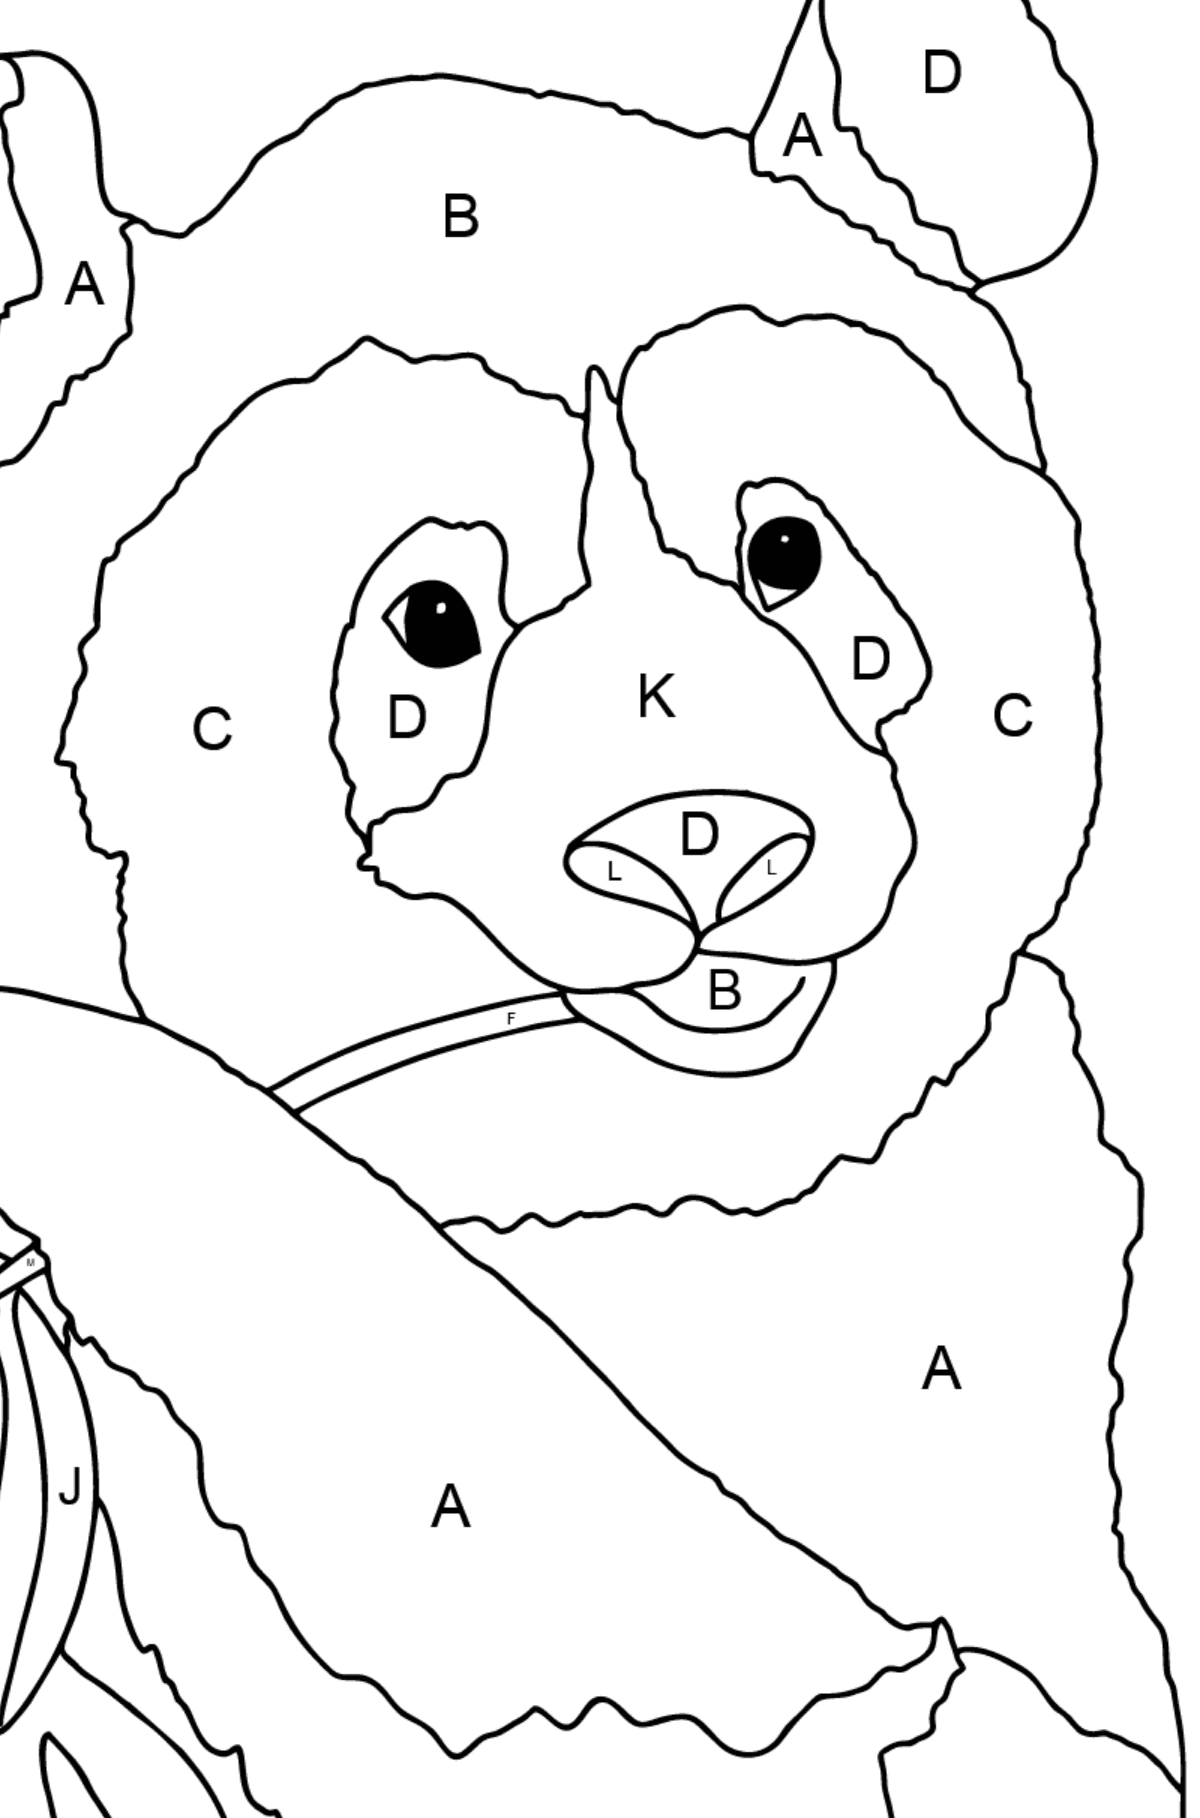 Coloring Page - A Panda is Eating Bamboo Stems and Leaves - Coloring by Letters for Children